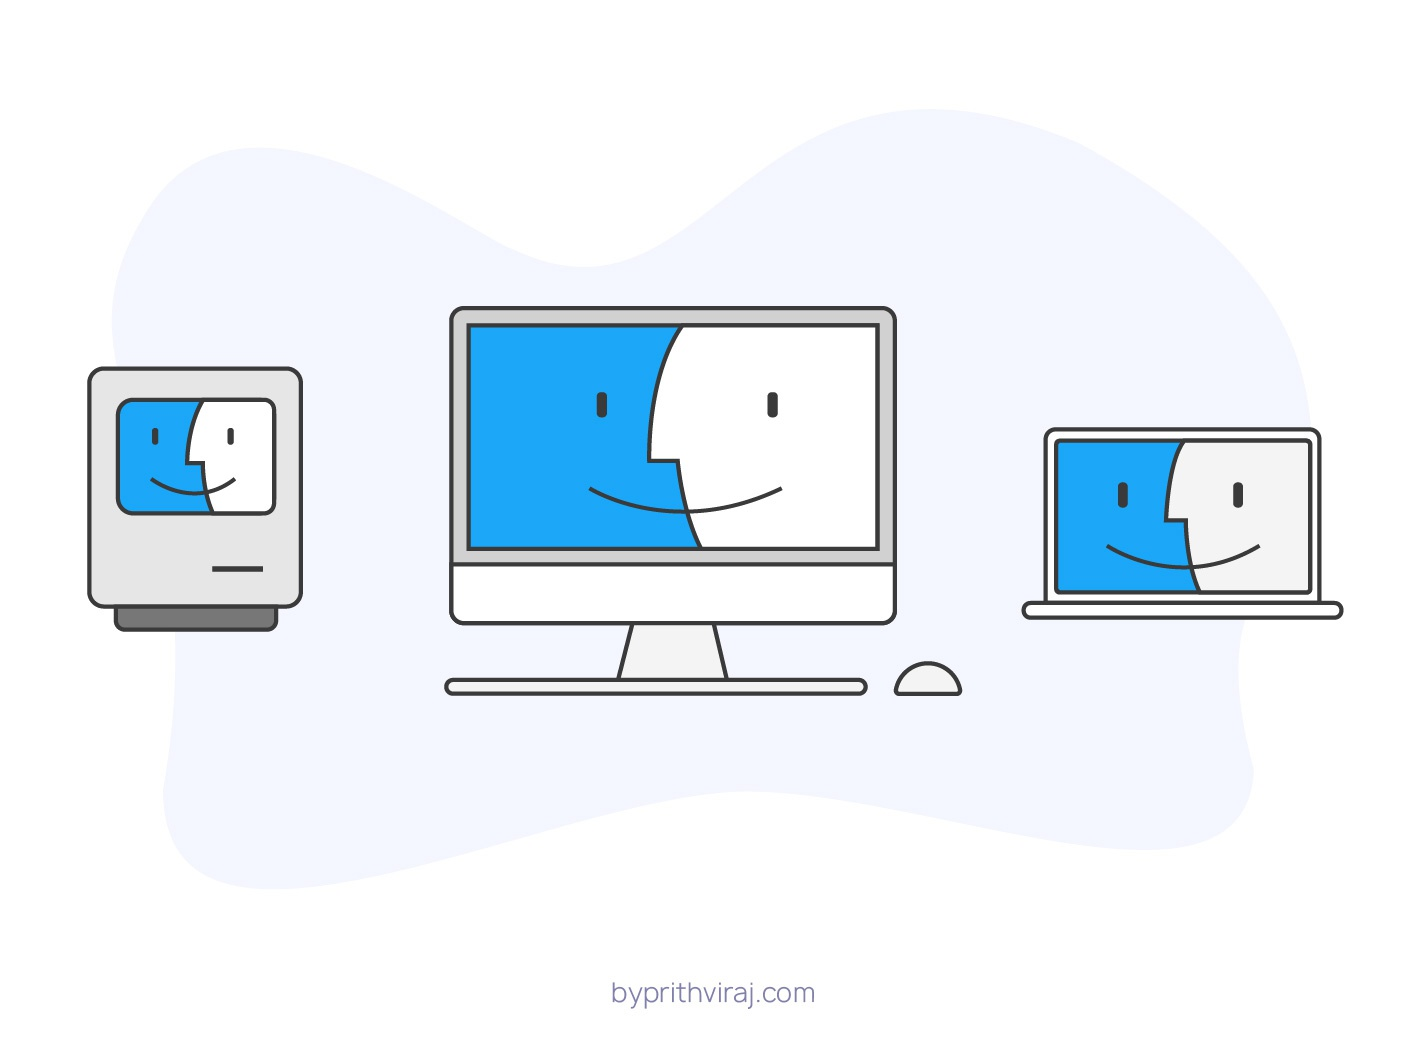 3 Macskeeteers vector outline icons stroke icons apple macbook pro macbook imac macintosh finder mac and cheese design illustration mac